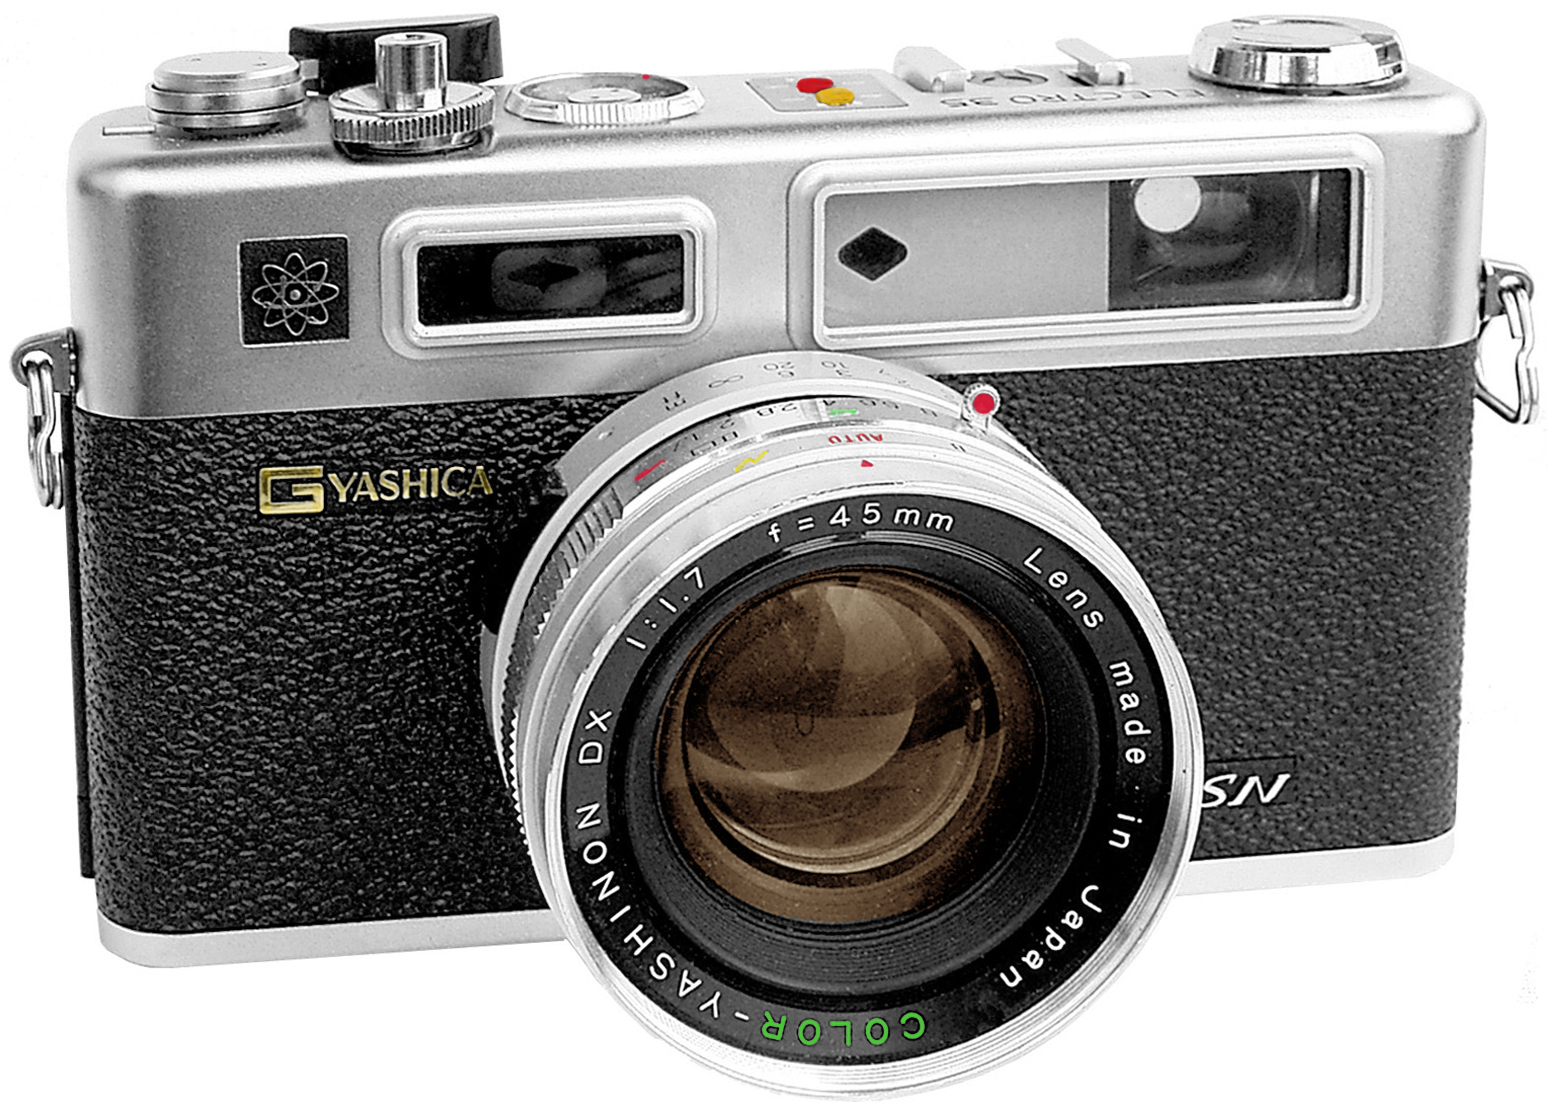 A photo of a Yaschica Electro 35mm film camera